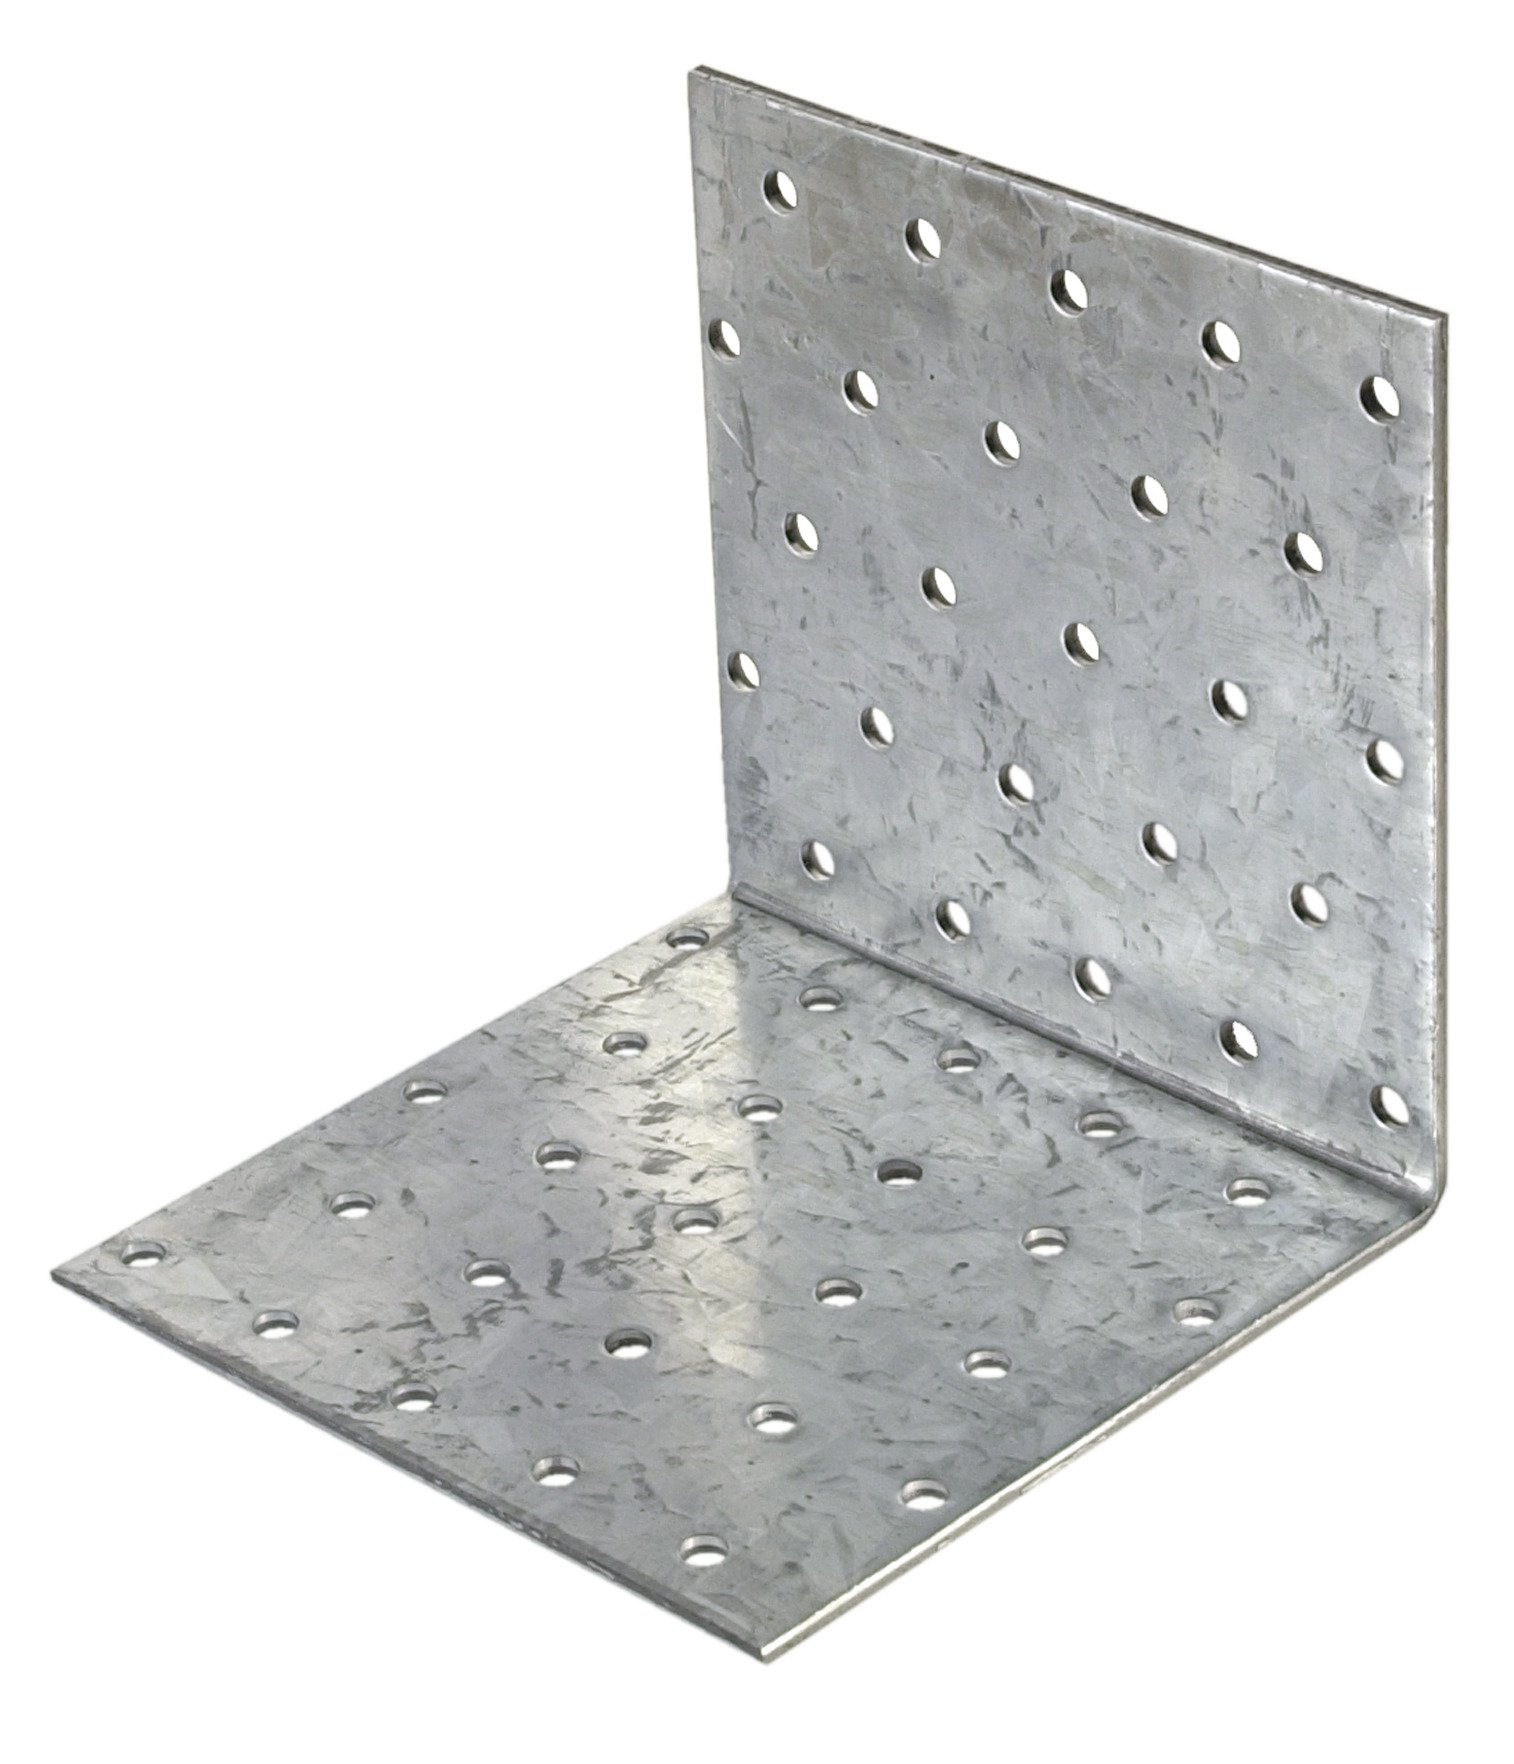 CONNEX HVG2720 60 x 60 x 50mm Long Perforated Angle (25 Pieces)